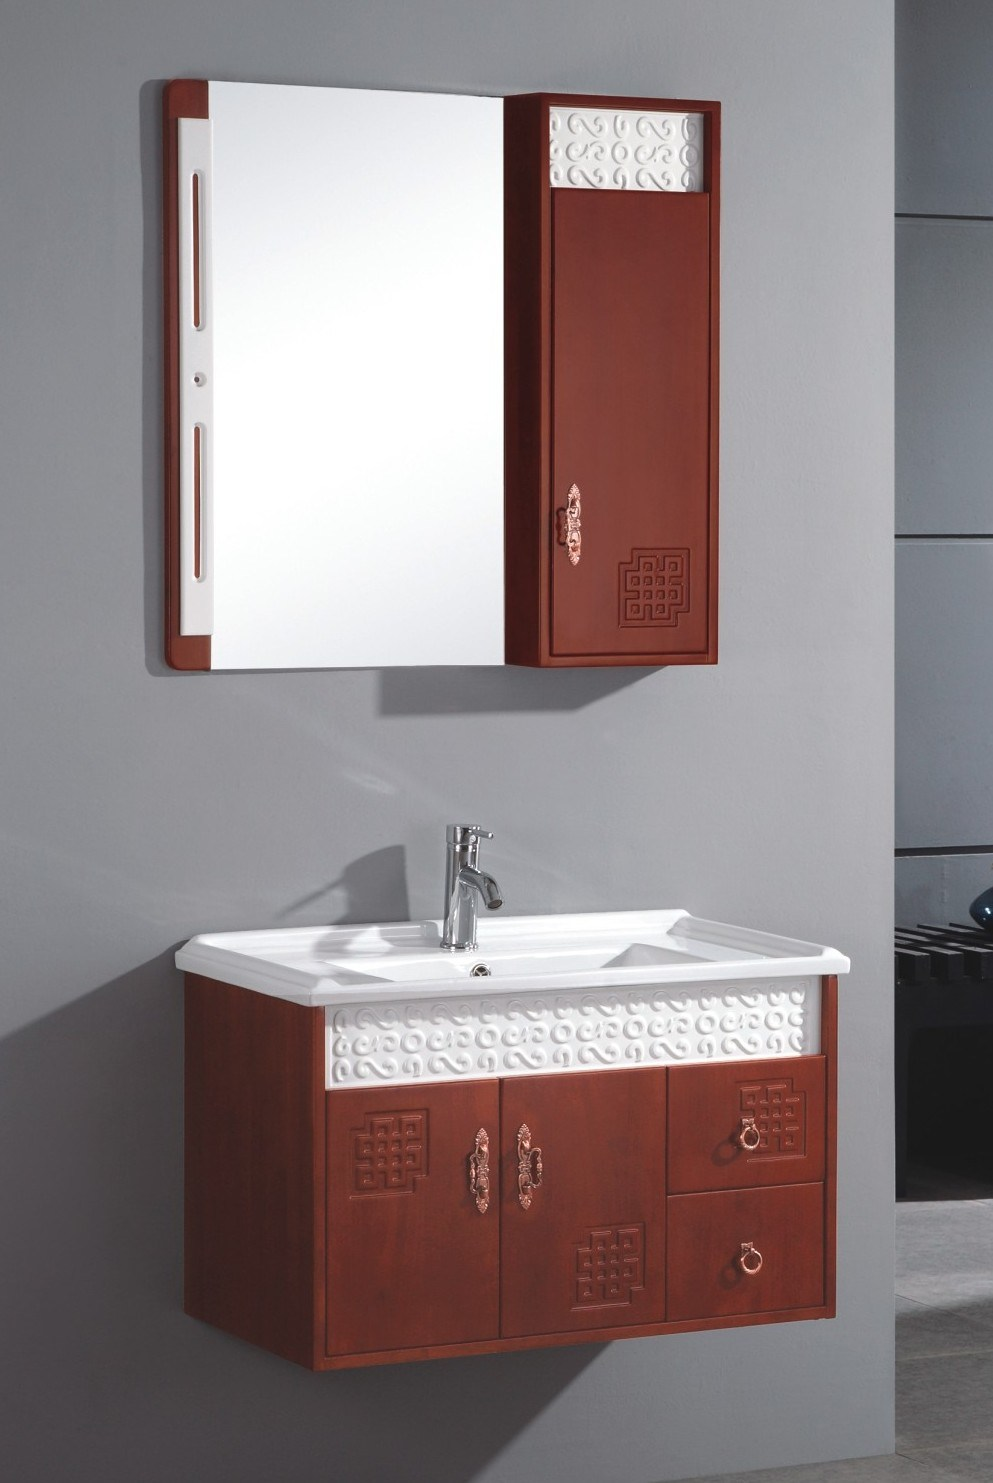 China Wall Mounted Single Sink Wooden Bathrooom Vanity Cabinet S6098 China Bathroom Vanity